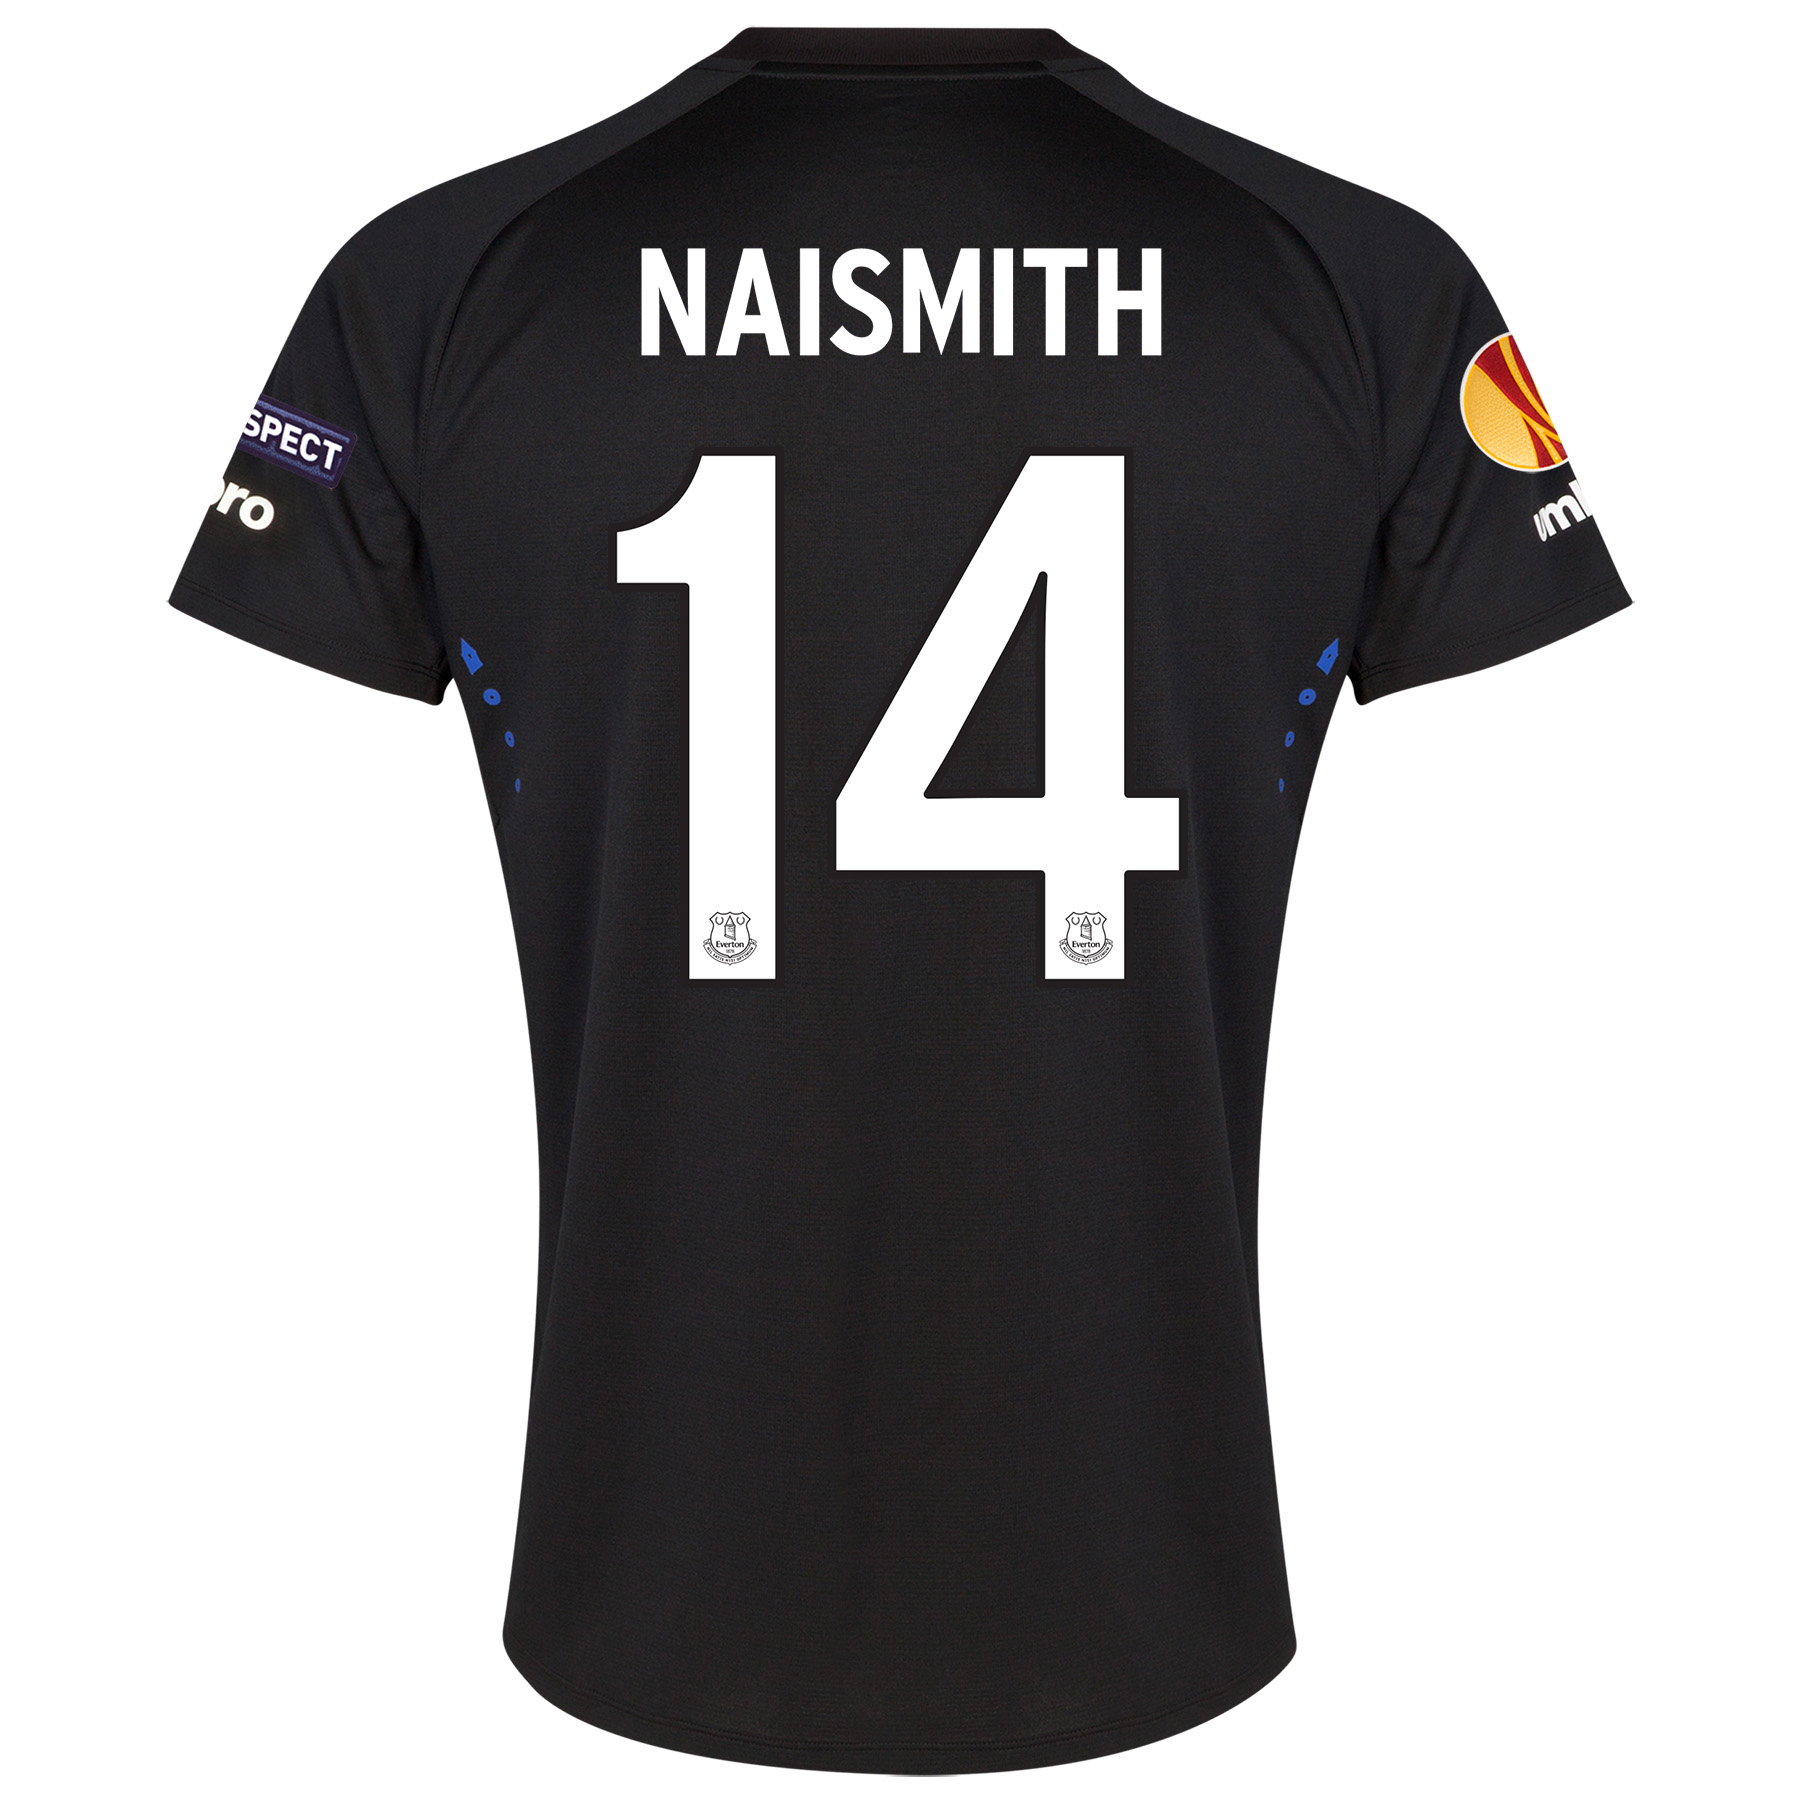 Everton UEFA Europa League Away Shirt 2014/15 with Naismith 14 printing